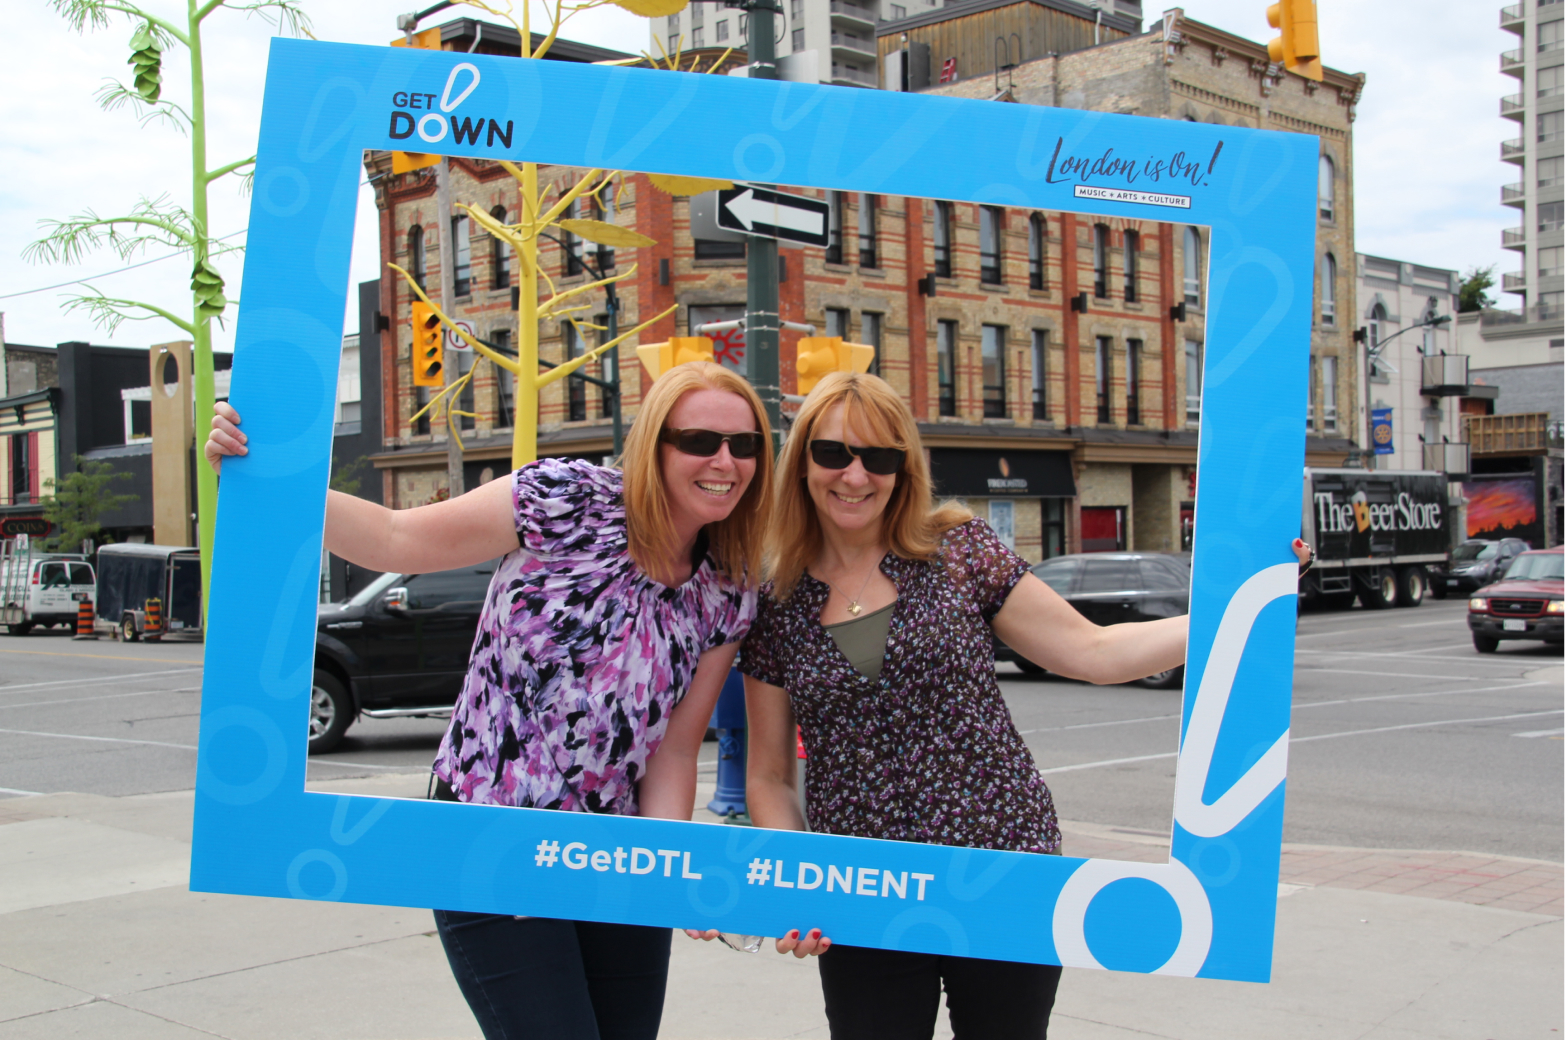 Two women posing with the #GetDTL photo frame